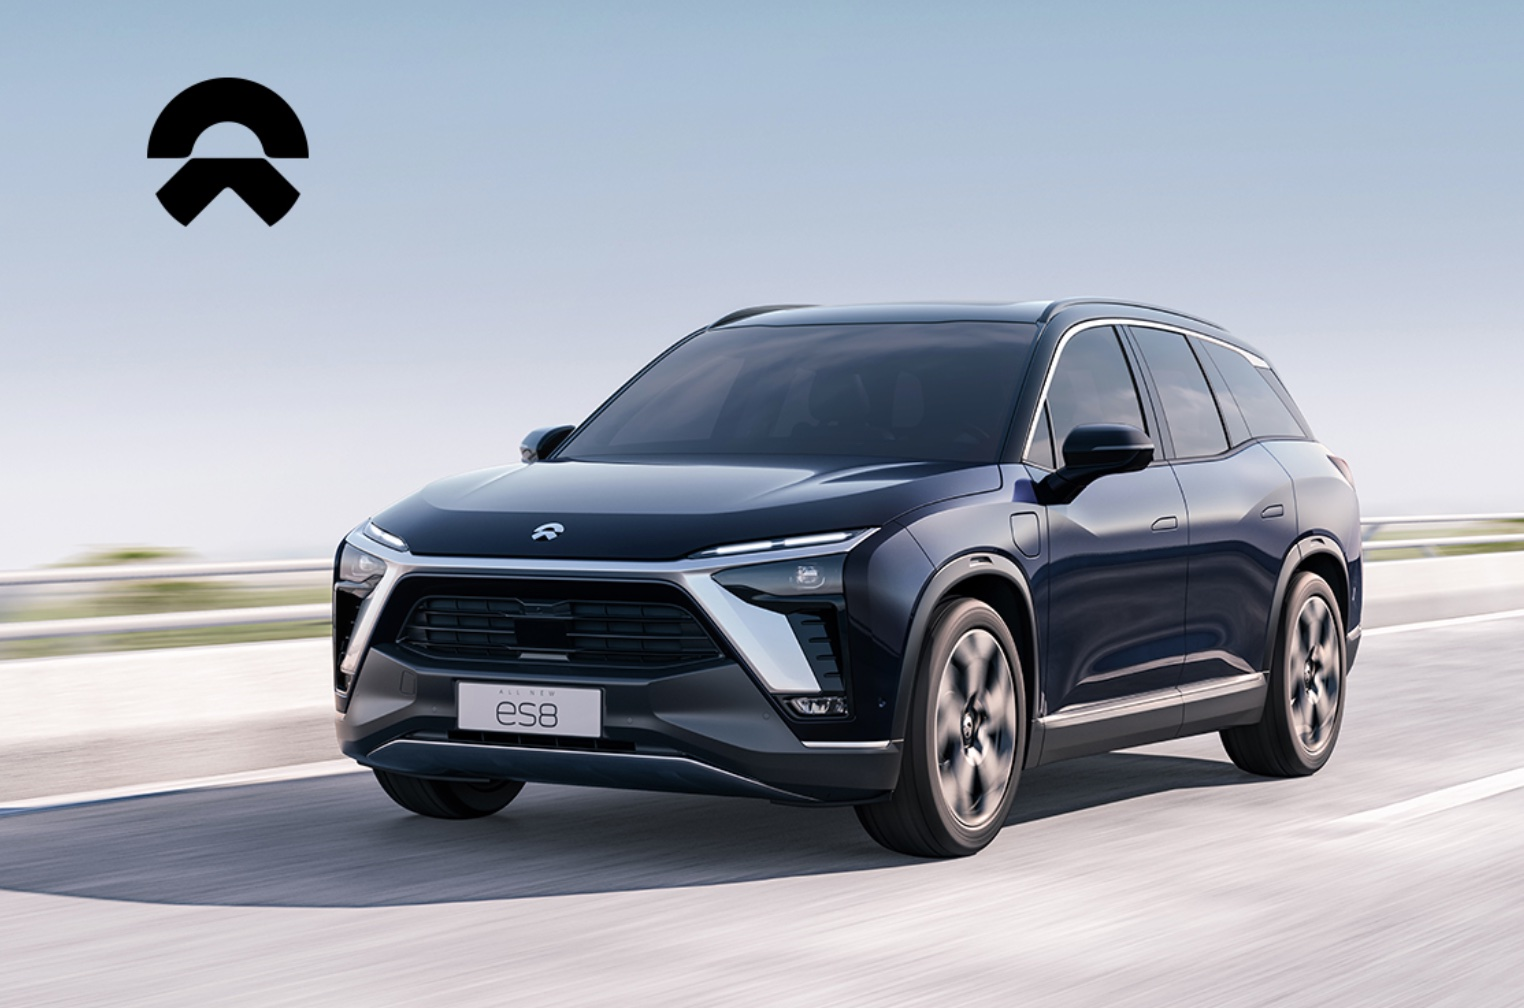 NIO, Li Auto, Xpeng - Who could be the next Tesla?-cnTechPost